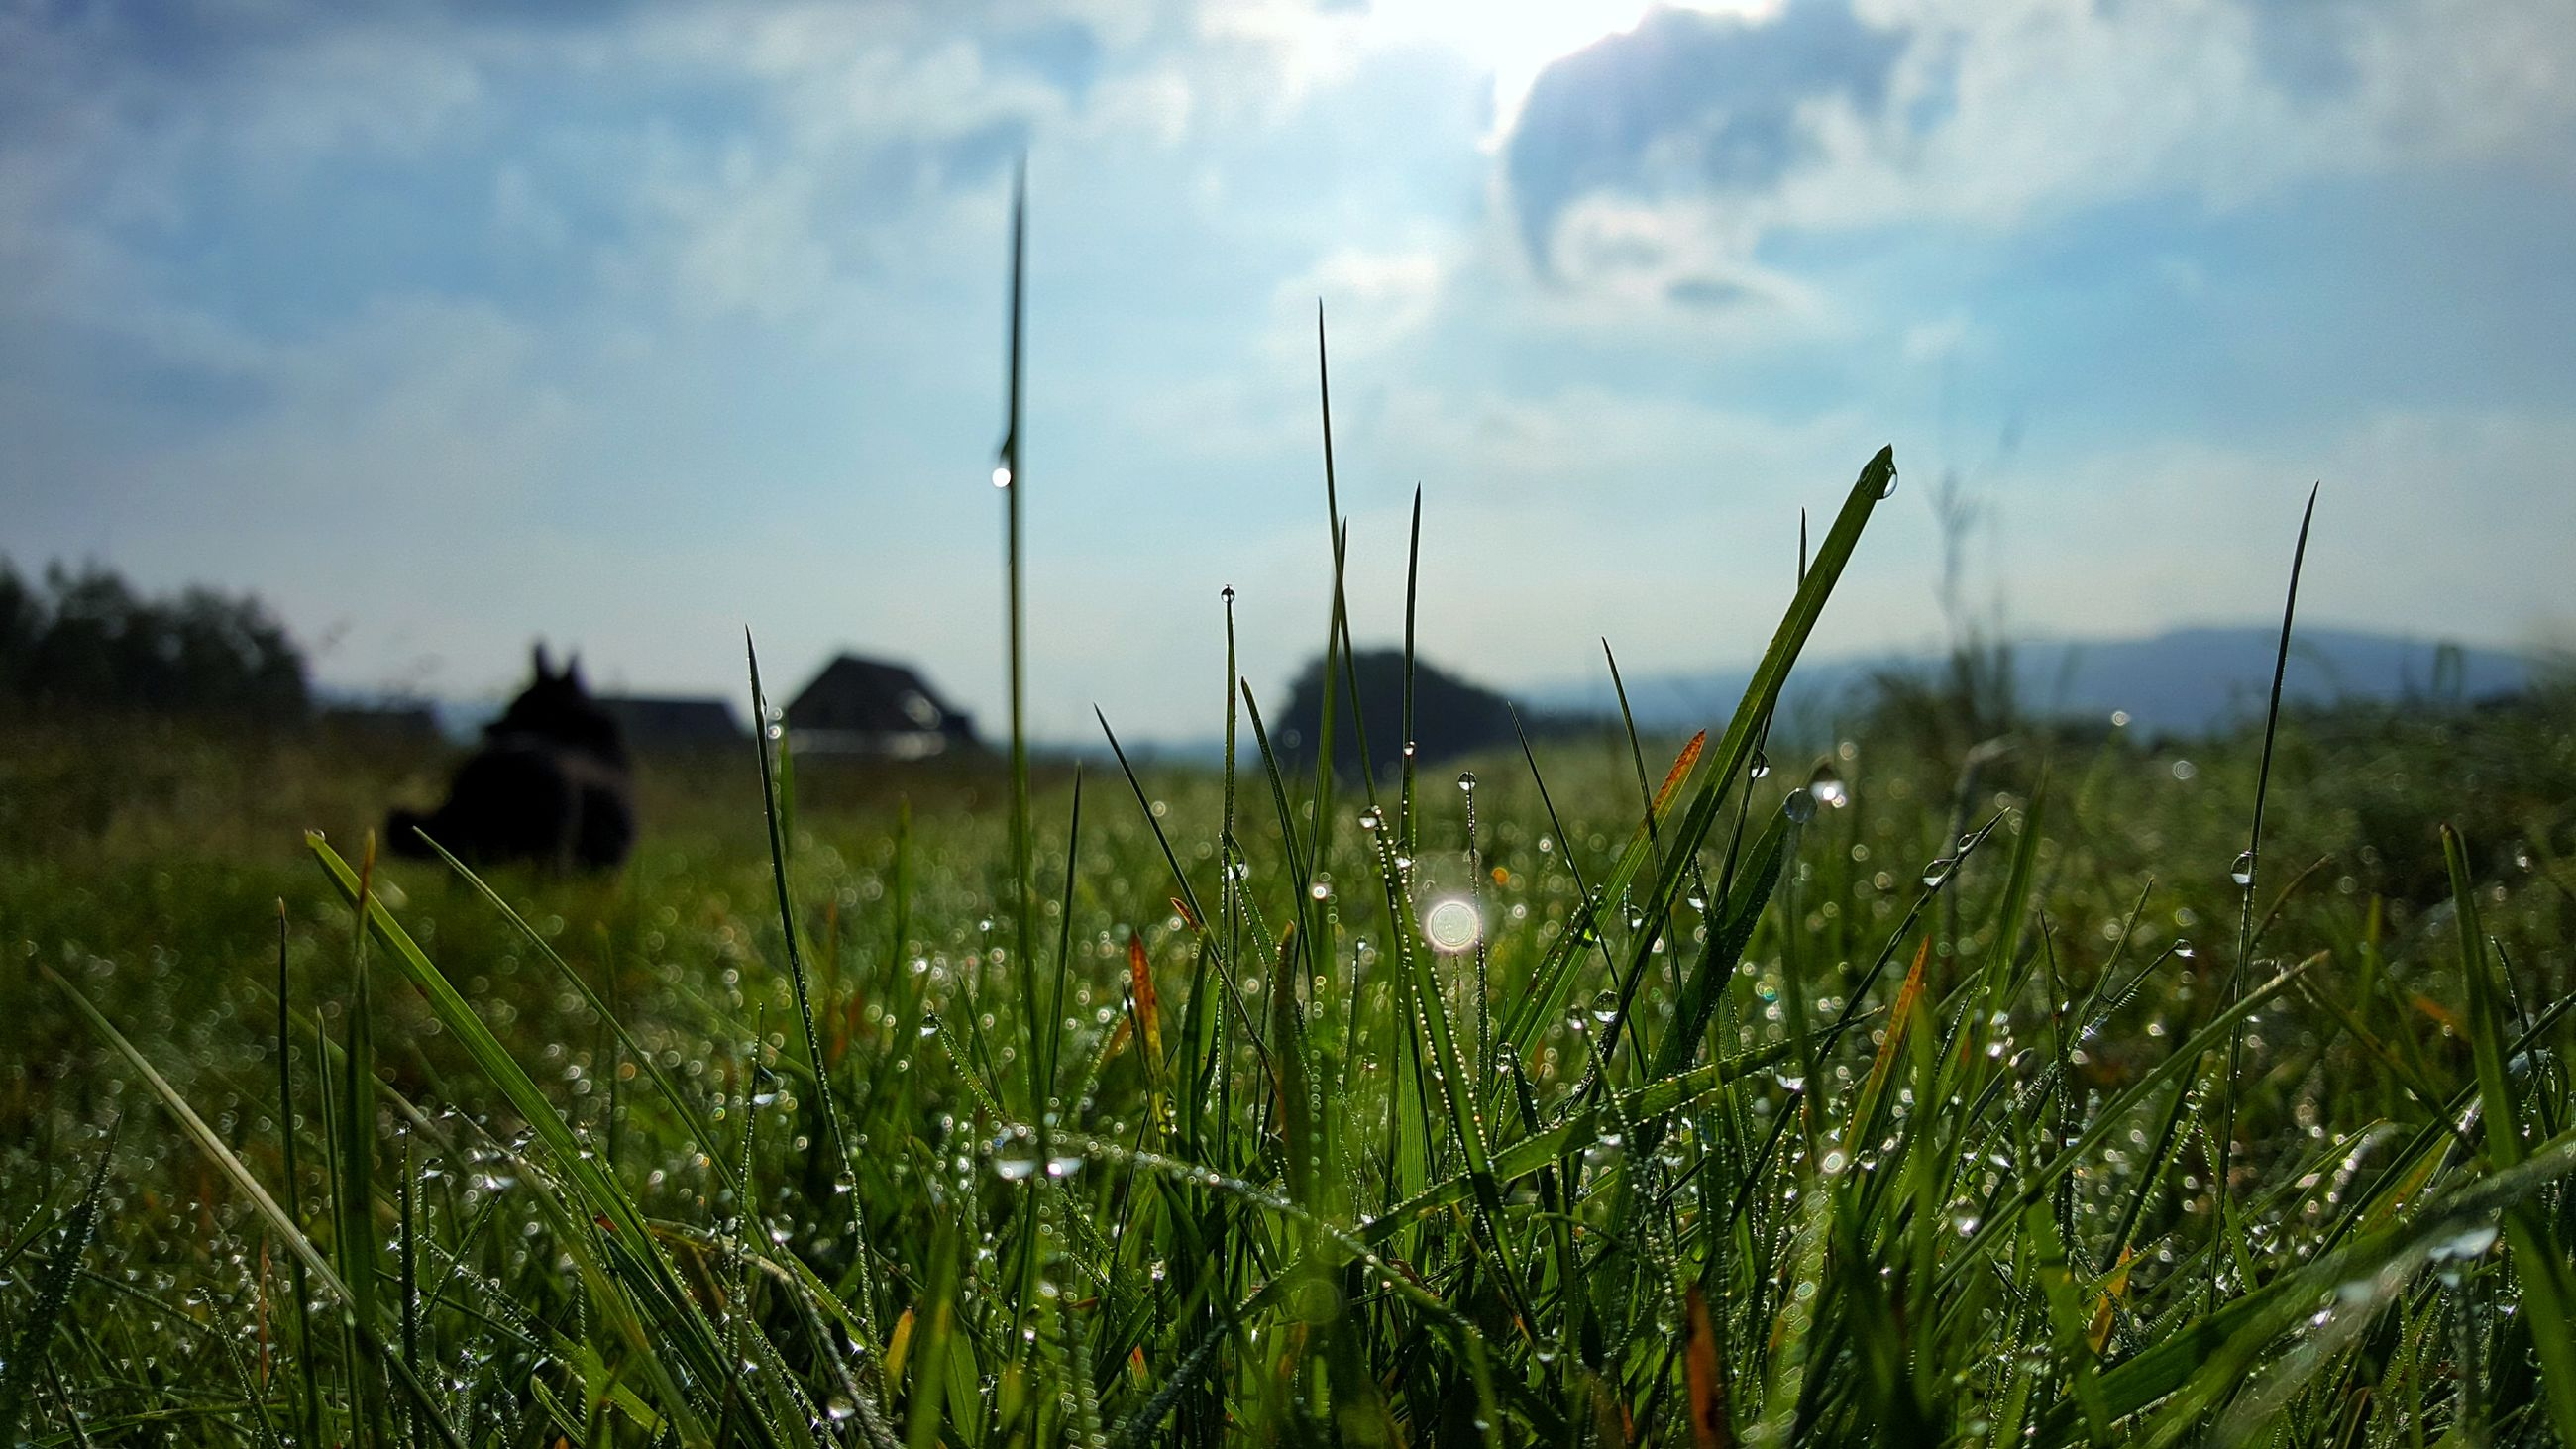 growth, nature, field, grass, sky, no people, plant, tranquility, green color, outdoors, day, beauty in nature, landscape, close-up